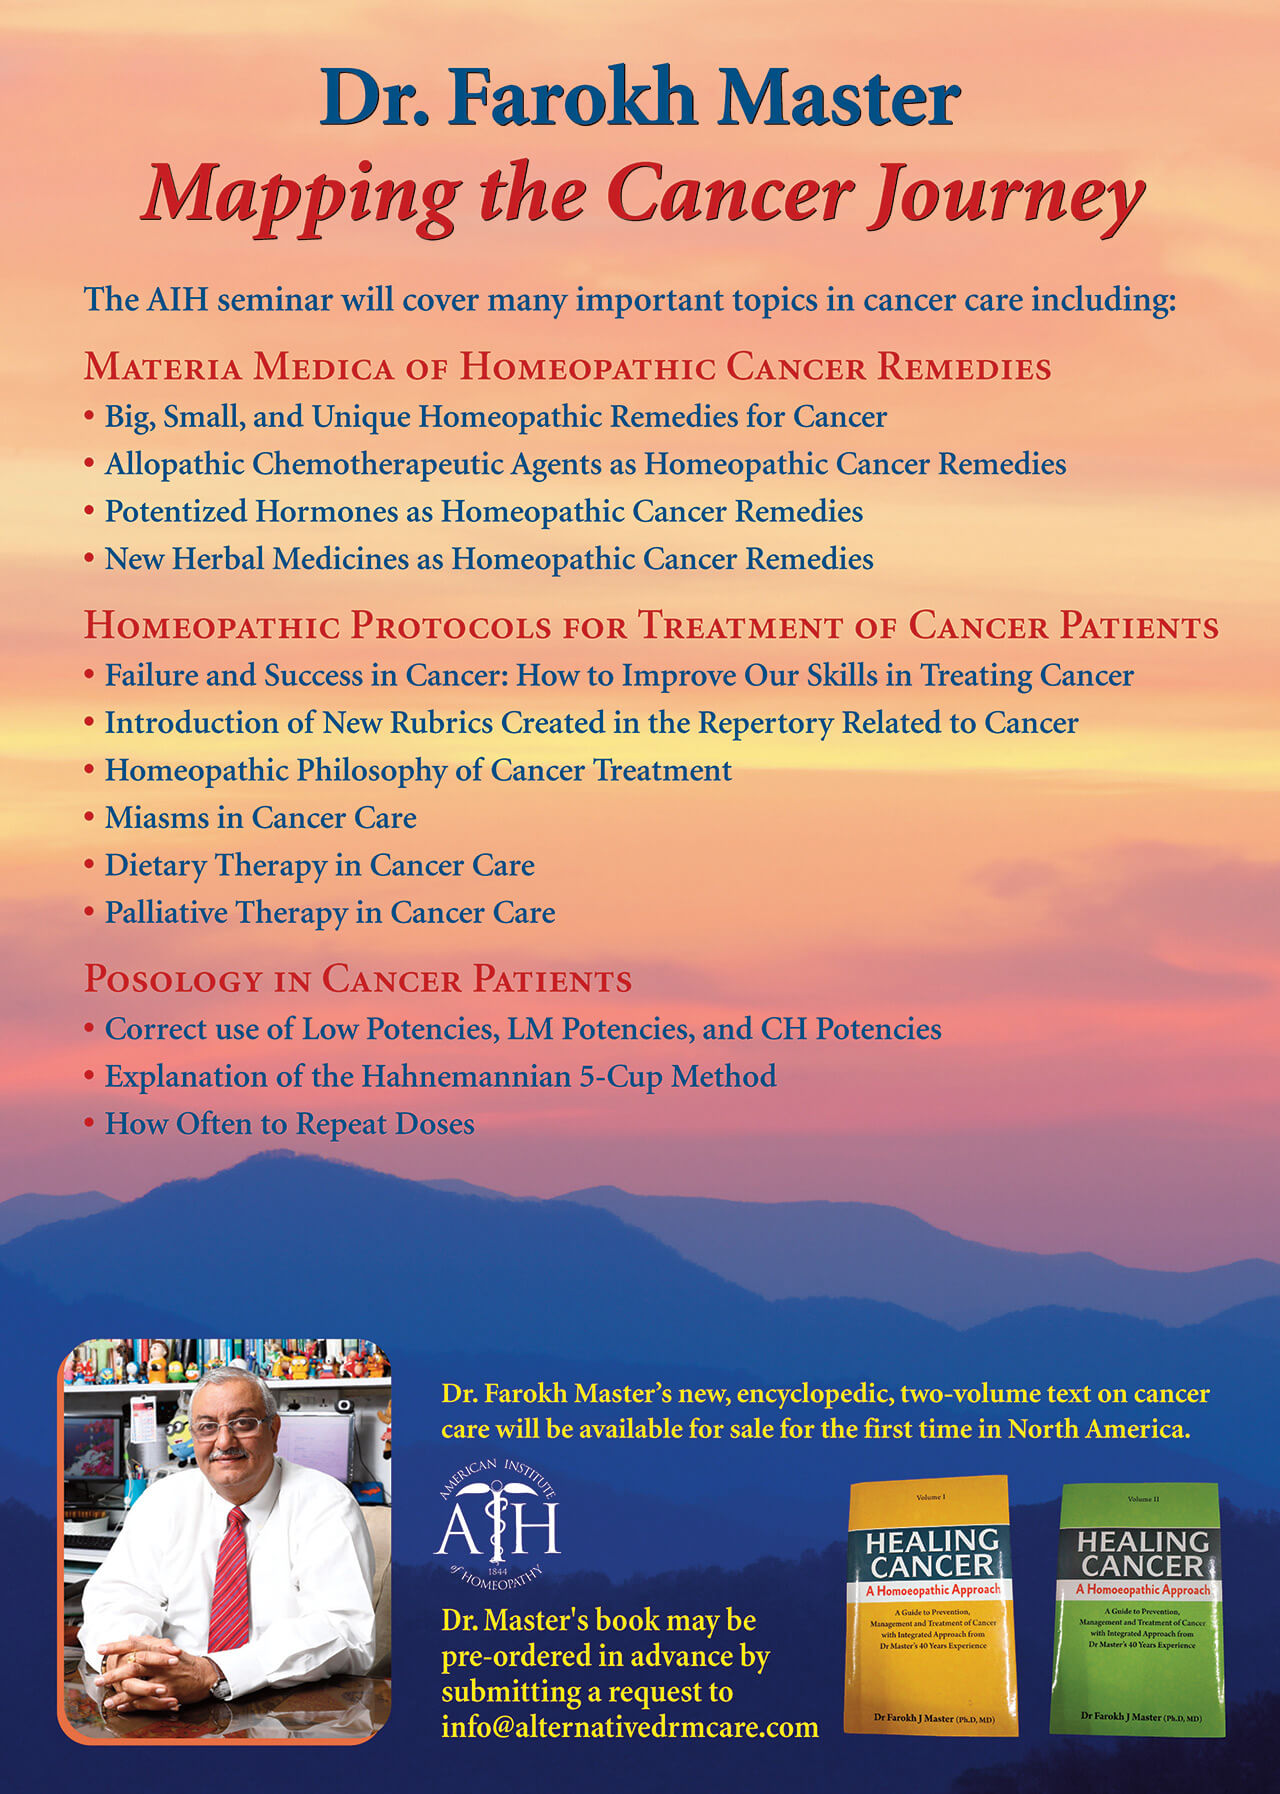 2019 Conference - Mapping the Cancer Journey